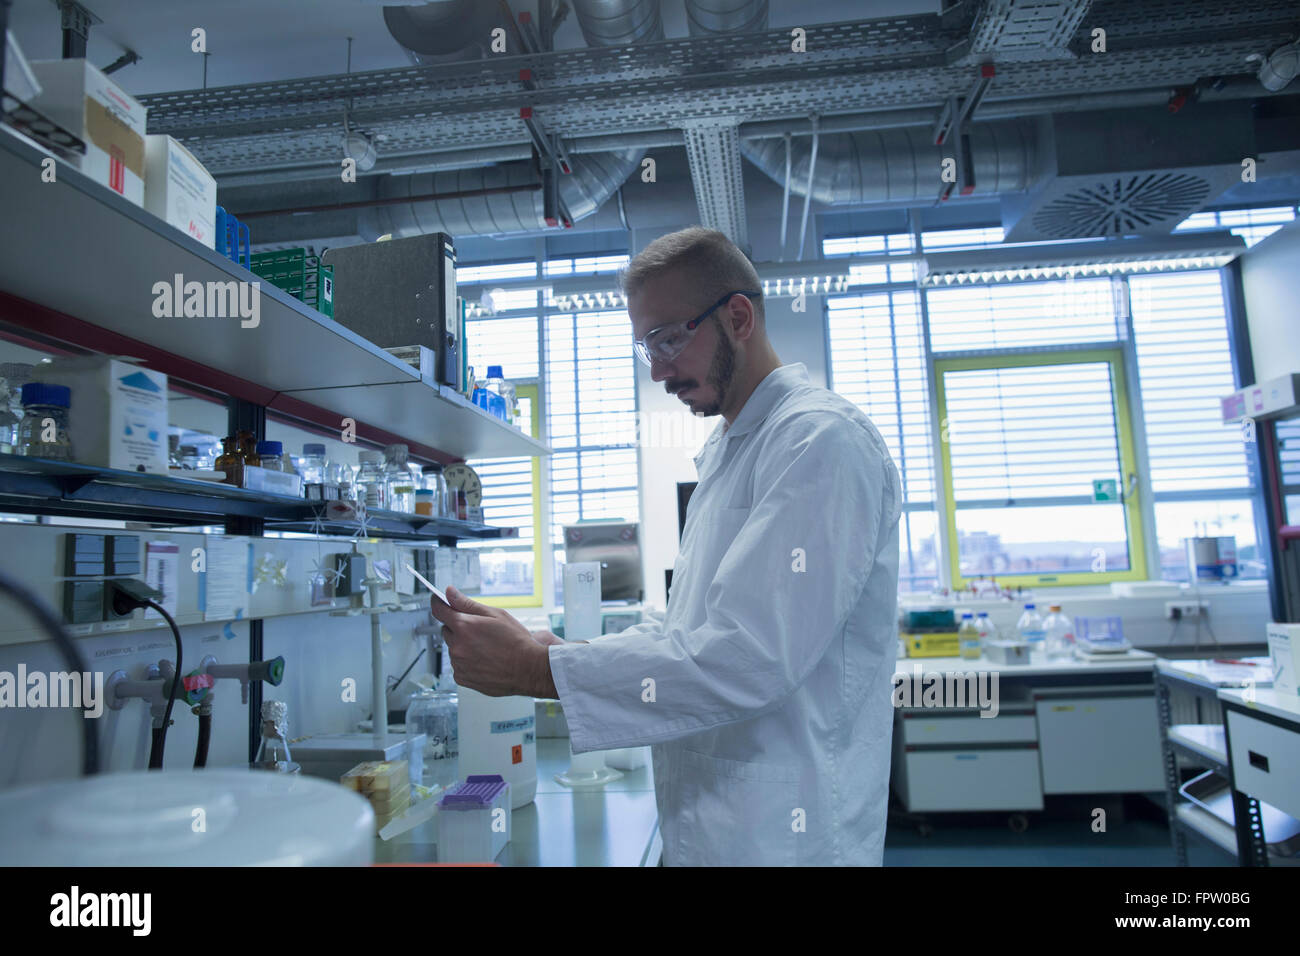 Male scientist working in a pharmacy laboratory, Freiburg Im Breisgau, Baden-Württemberg, Germany - Stock Image